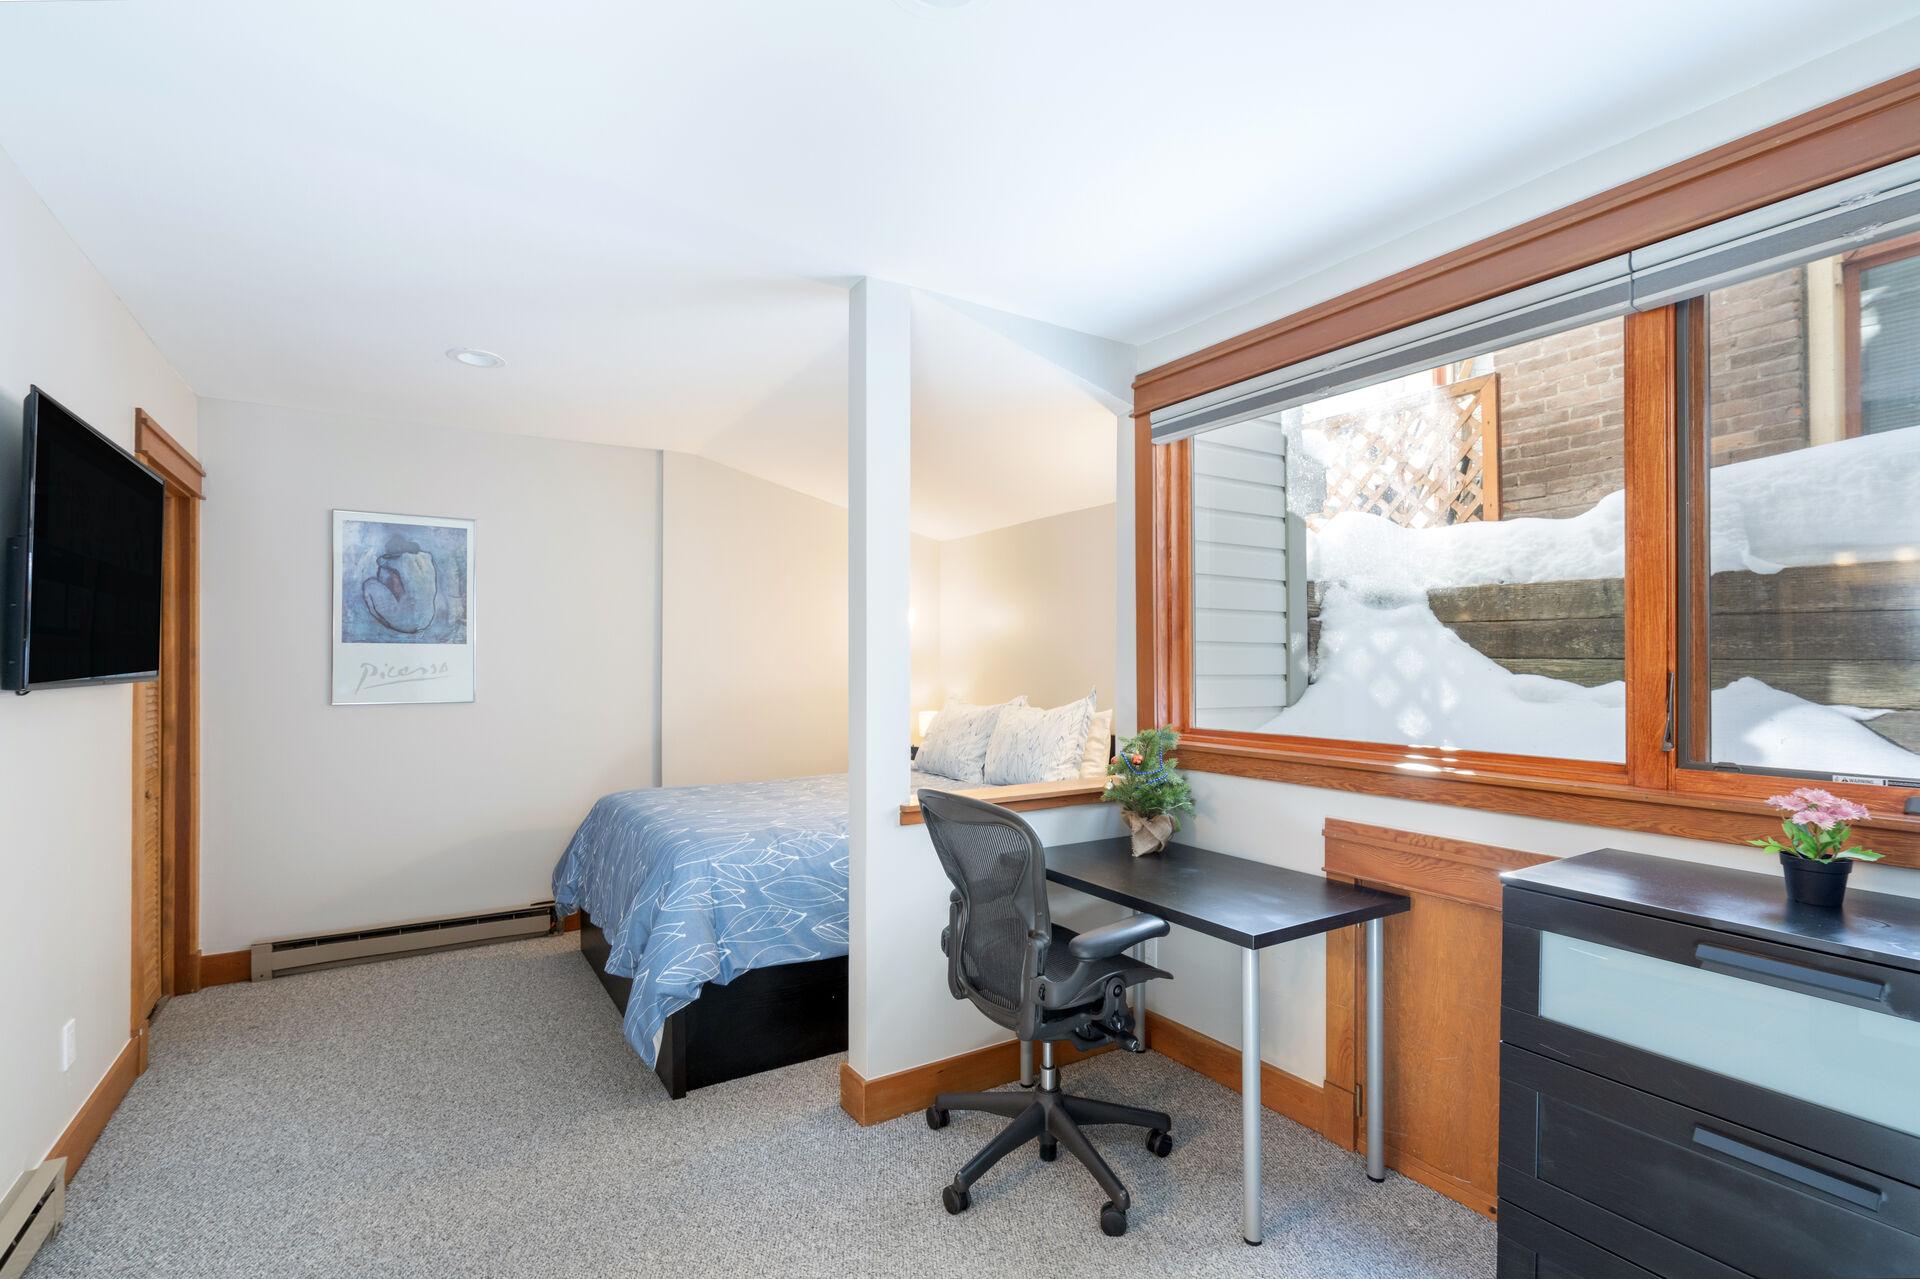 Room with bed and small desk to work from